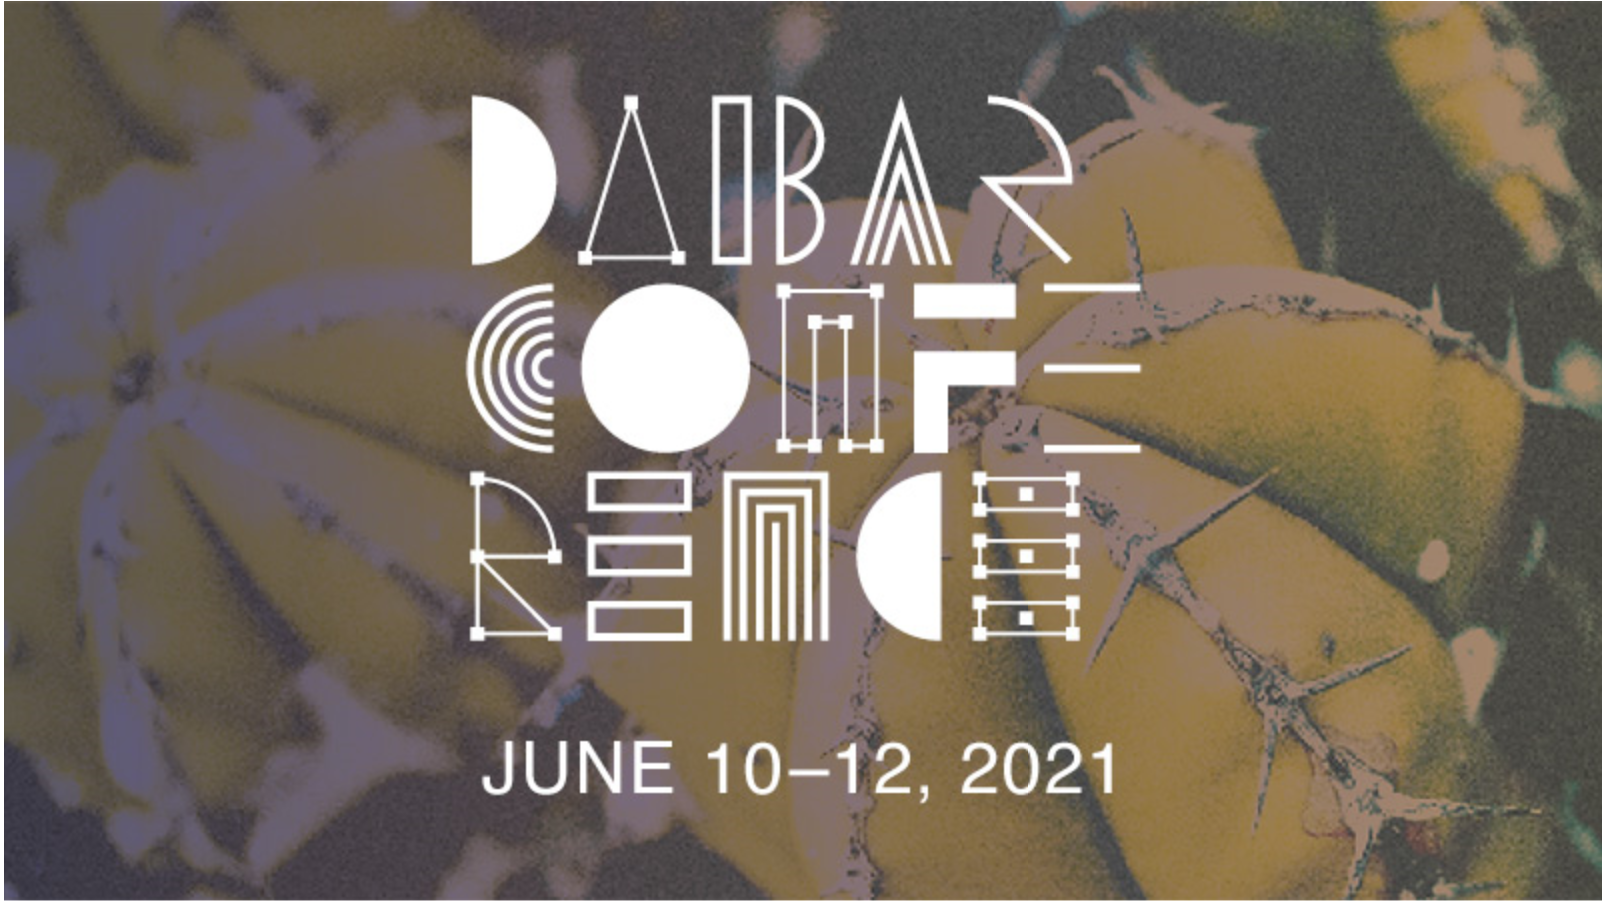 Dabar Conference 2021 graphic